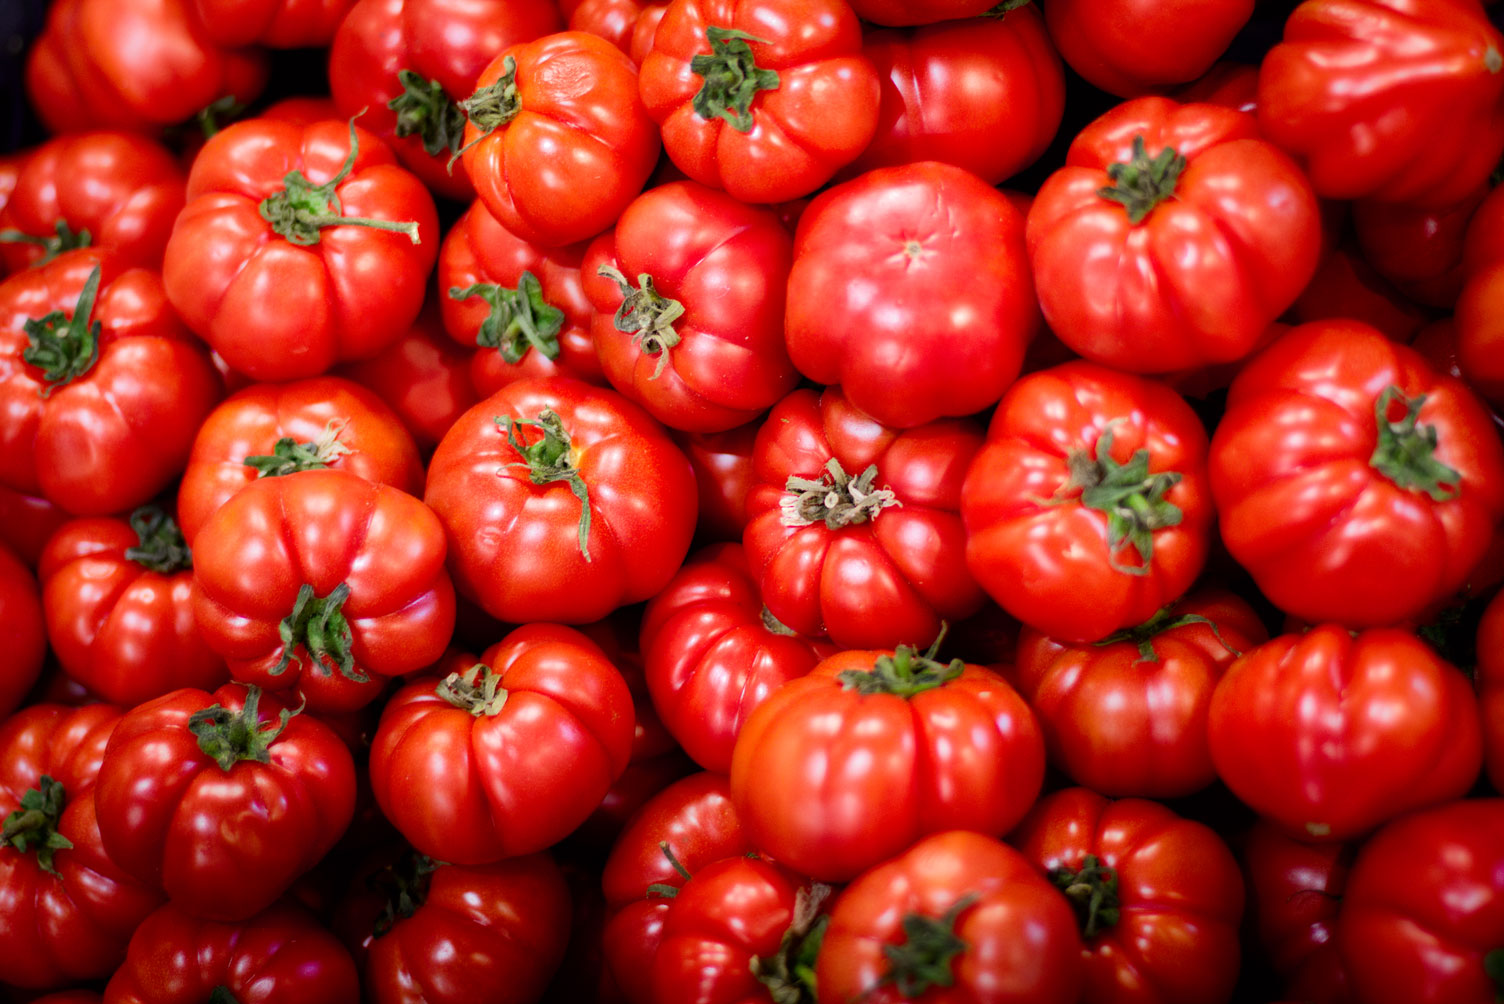 allthesomethings-kulinart-essen-food-somethingsdelicous-tomatoes